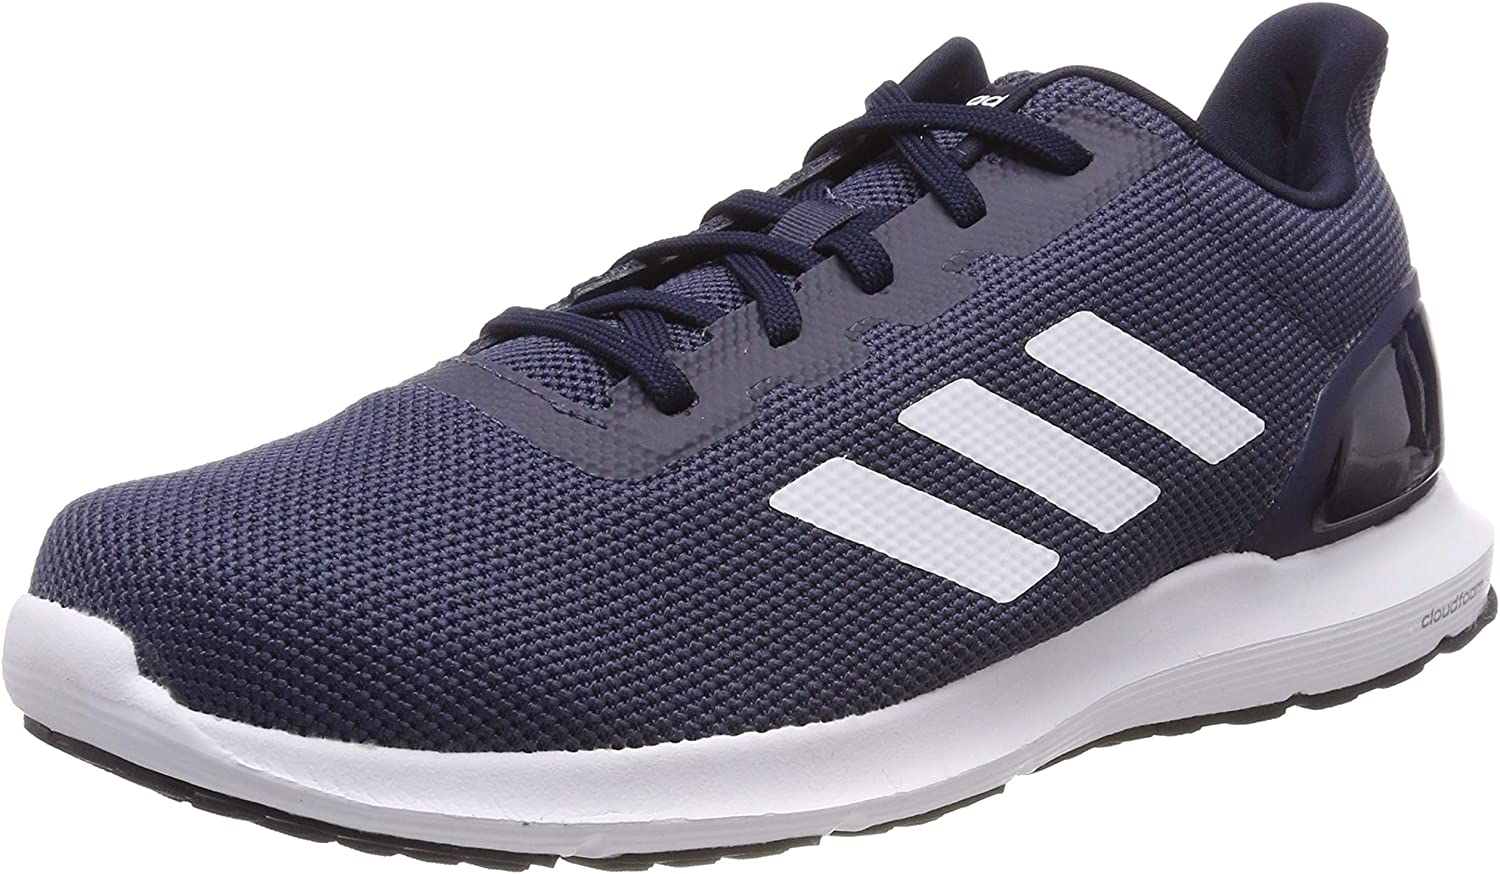 Adidas Men's Cosmic 2 Fitness shoes